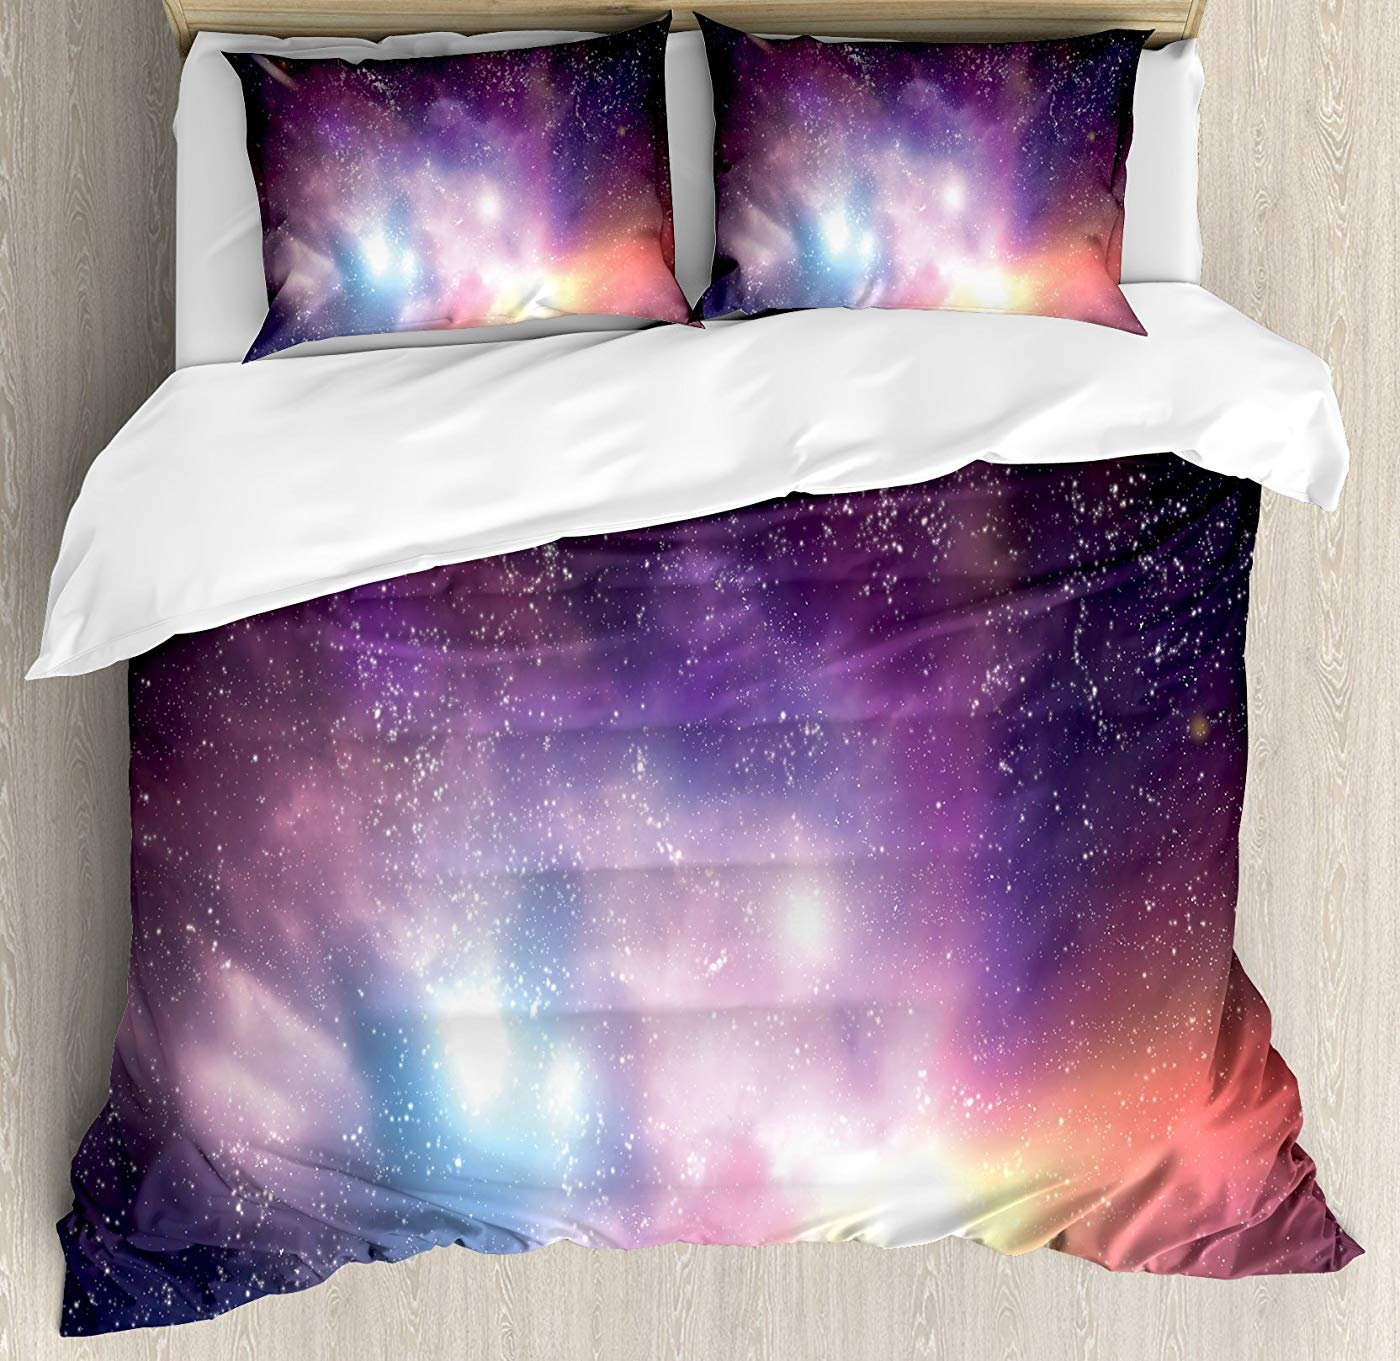 Multi 2 King Fantasy Duvet Cover Set Twin Size, Stormy Apocalypse Sky with Clouds Over Rock Towers on Alien World,Lightweight Microfiber Duvet Cover Sets, Dark bluee Peach Dark Brown